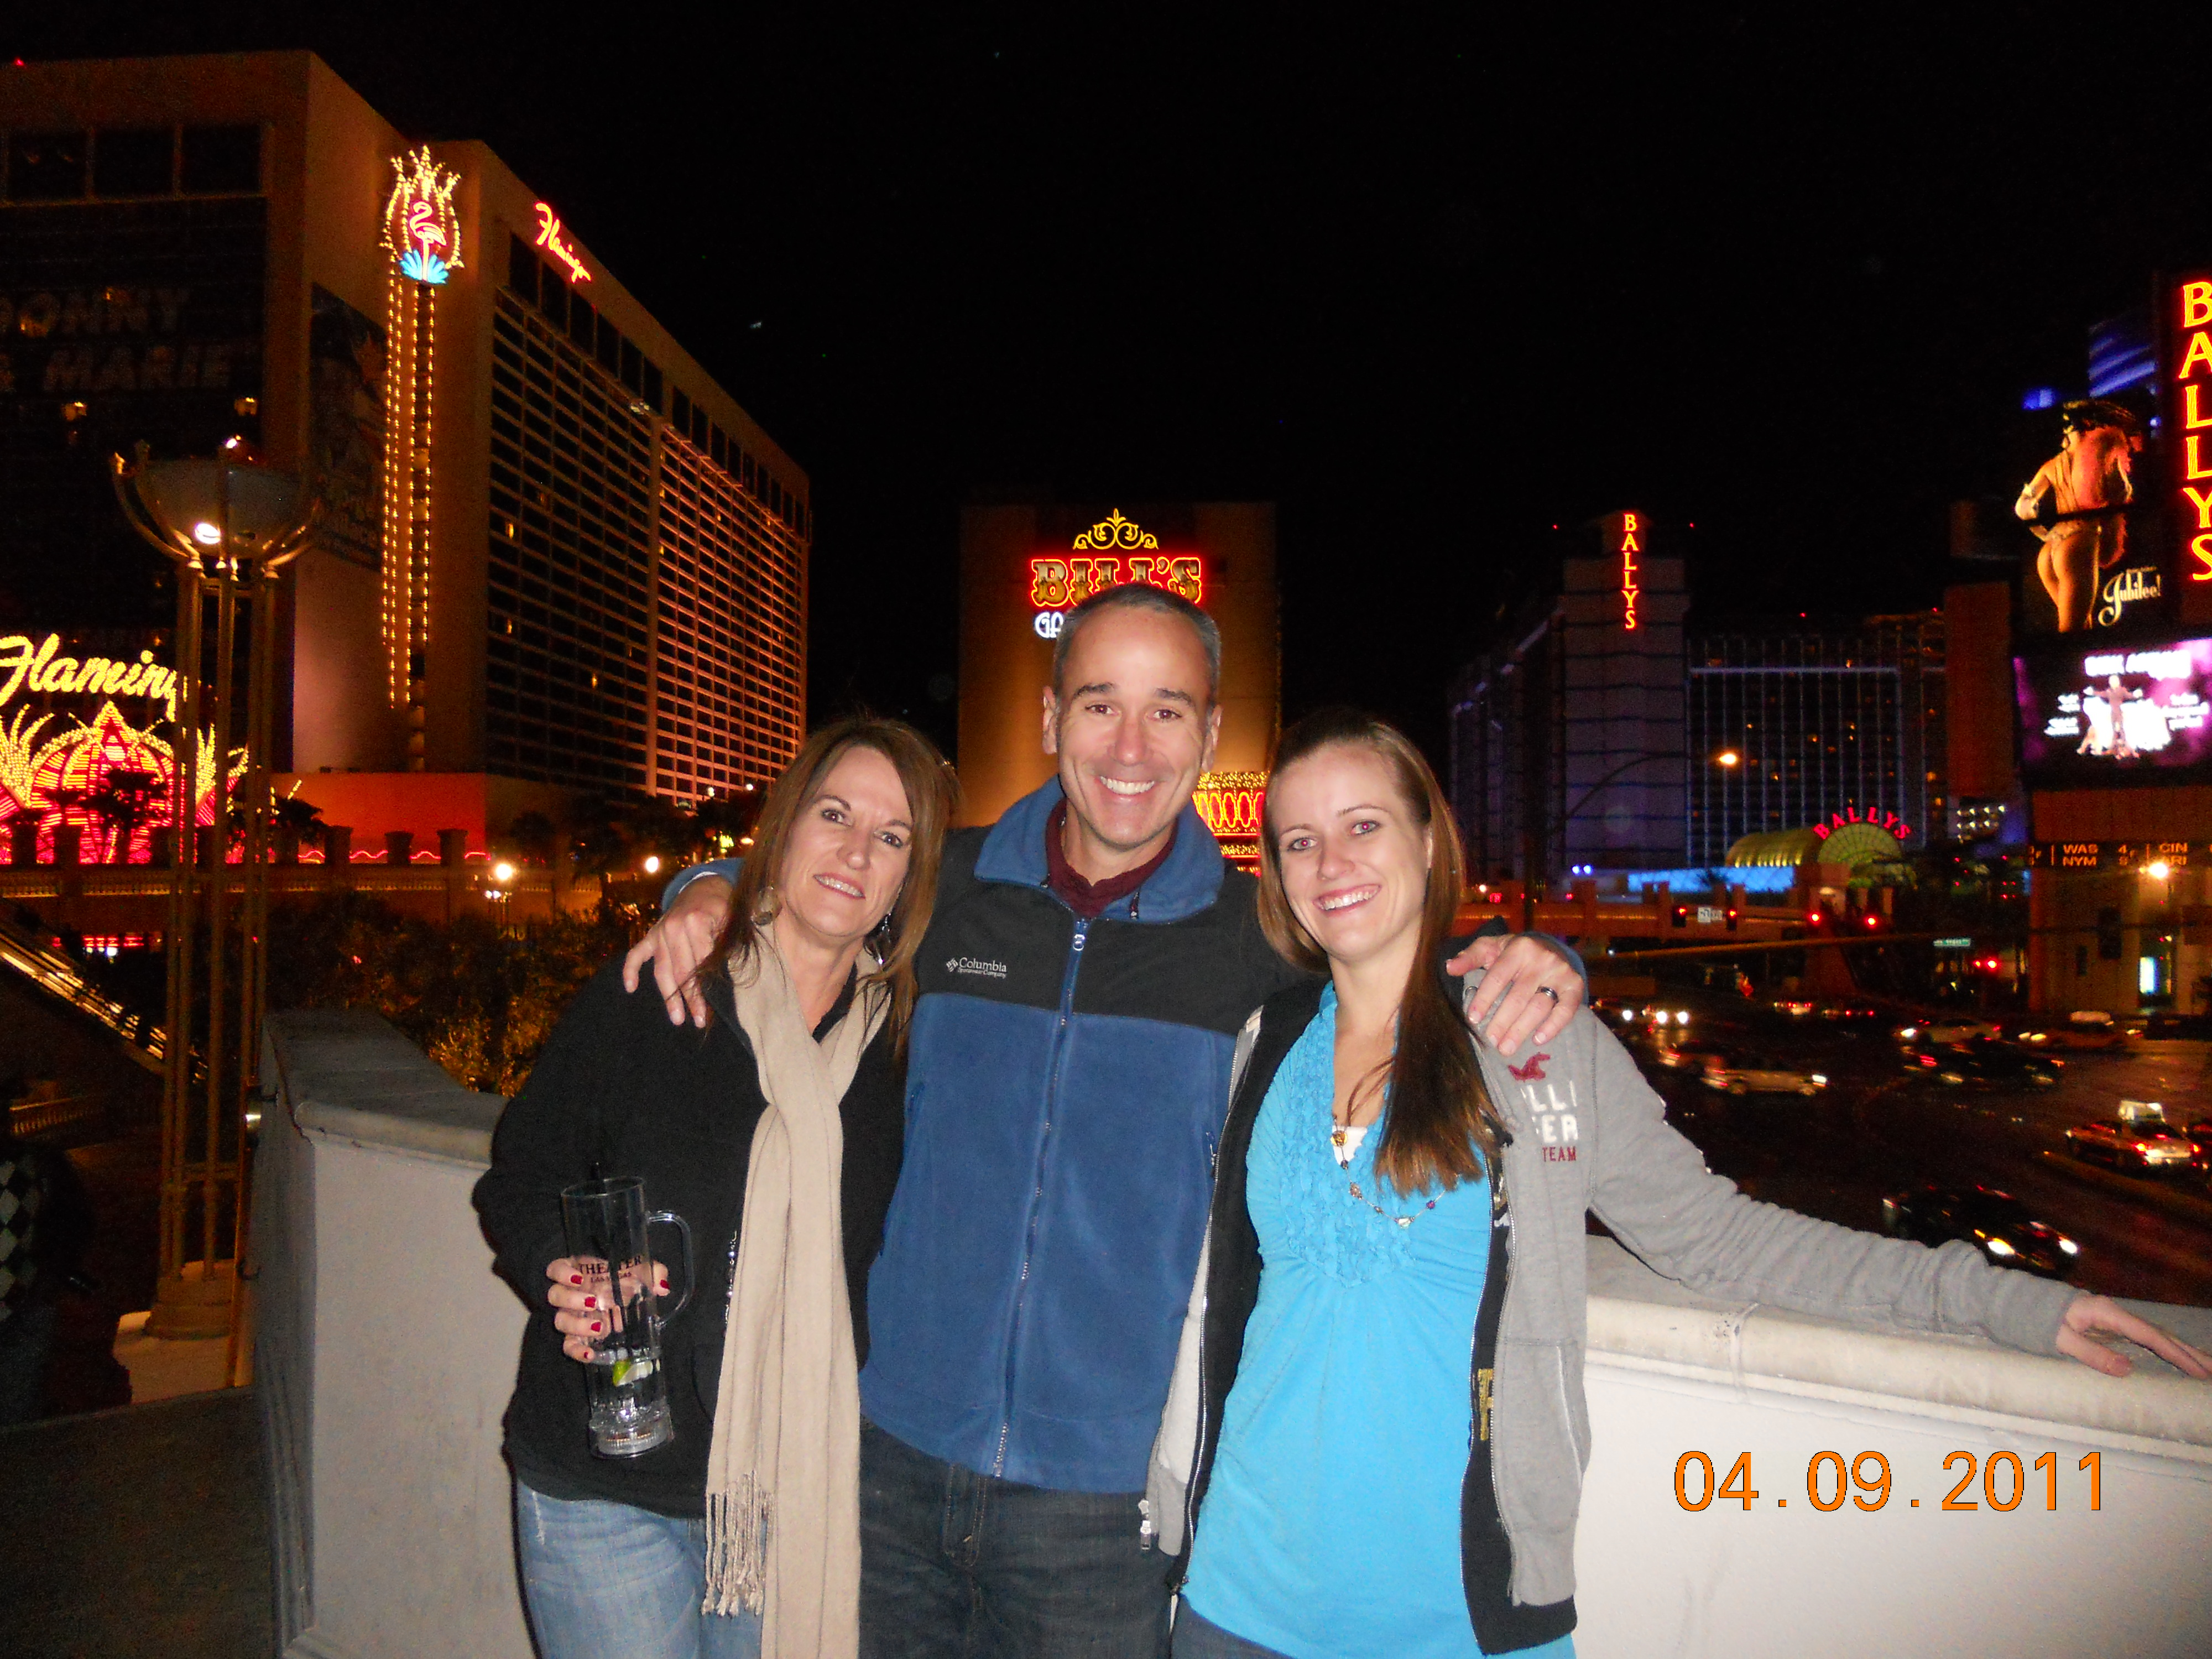 Family and vacation photo album 080